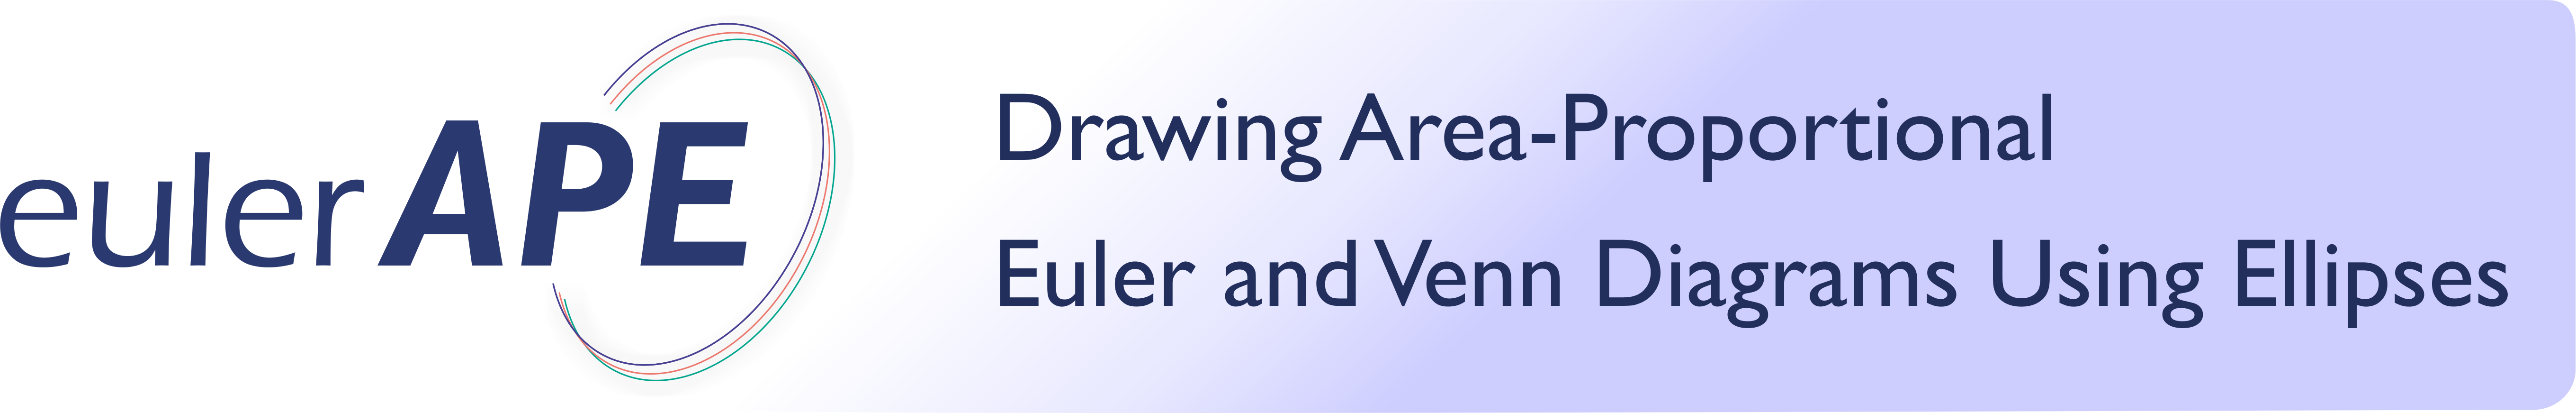 Eulerape drawing area proportional euler and venn diagrams using eulerape drawing area proportional euler and venn diagrams using ellipses pooptronica